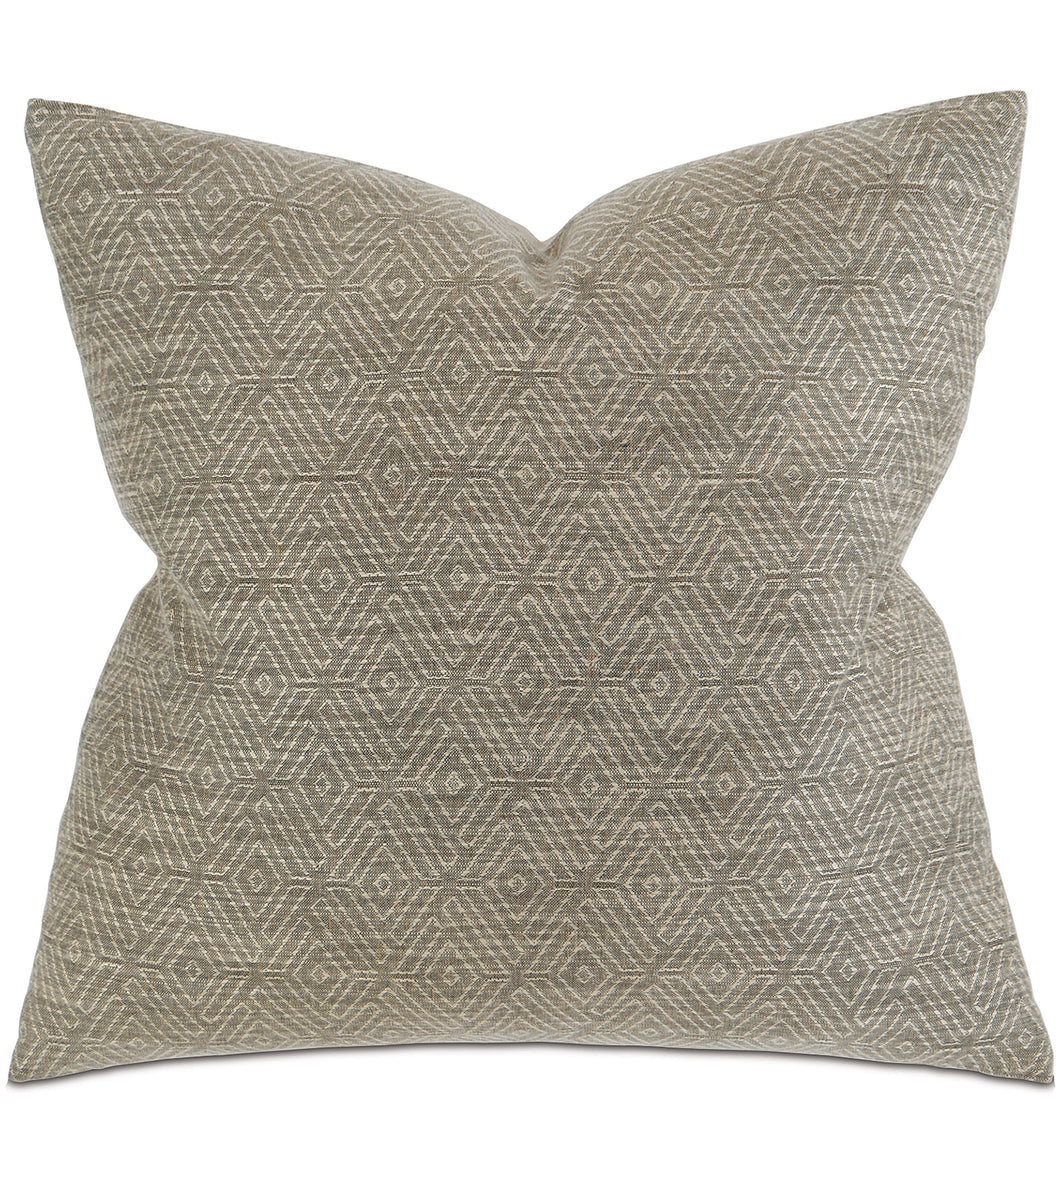 Taupe Woven Mountain Tribal Knife Edge Throw Pillow  22